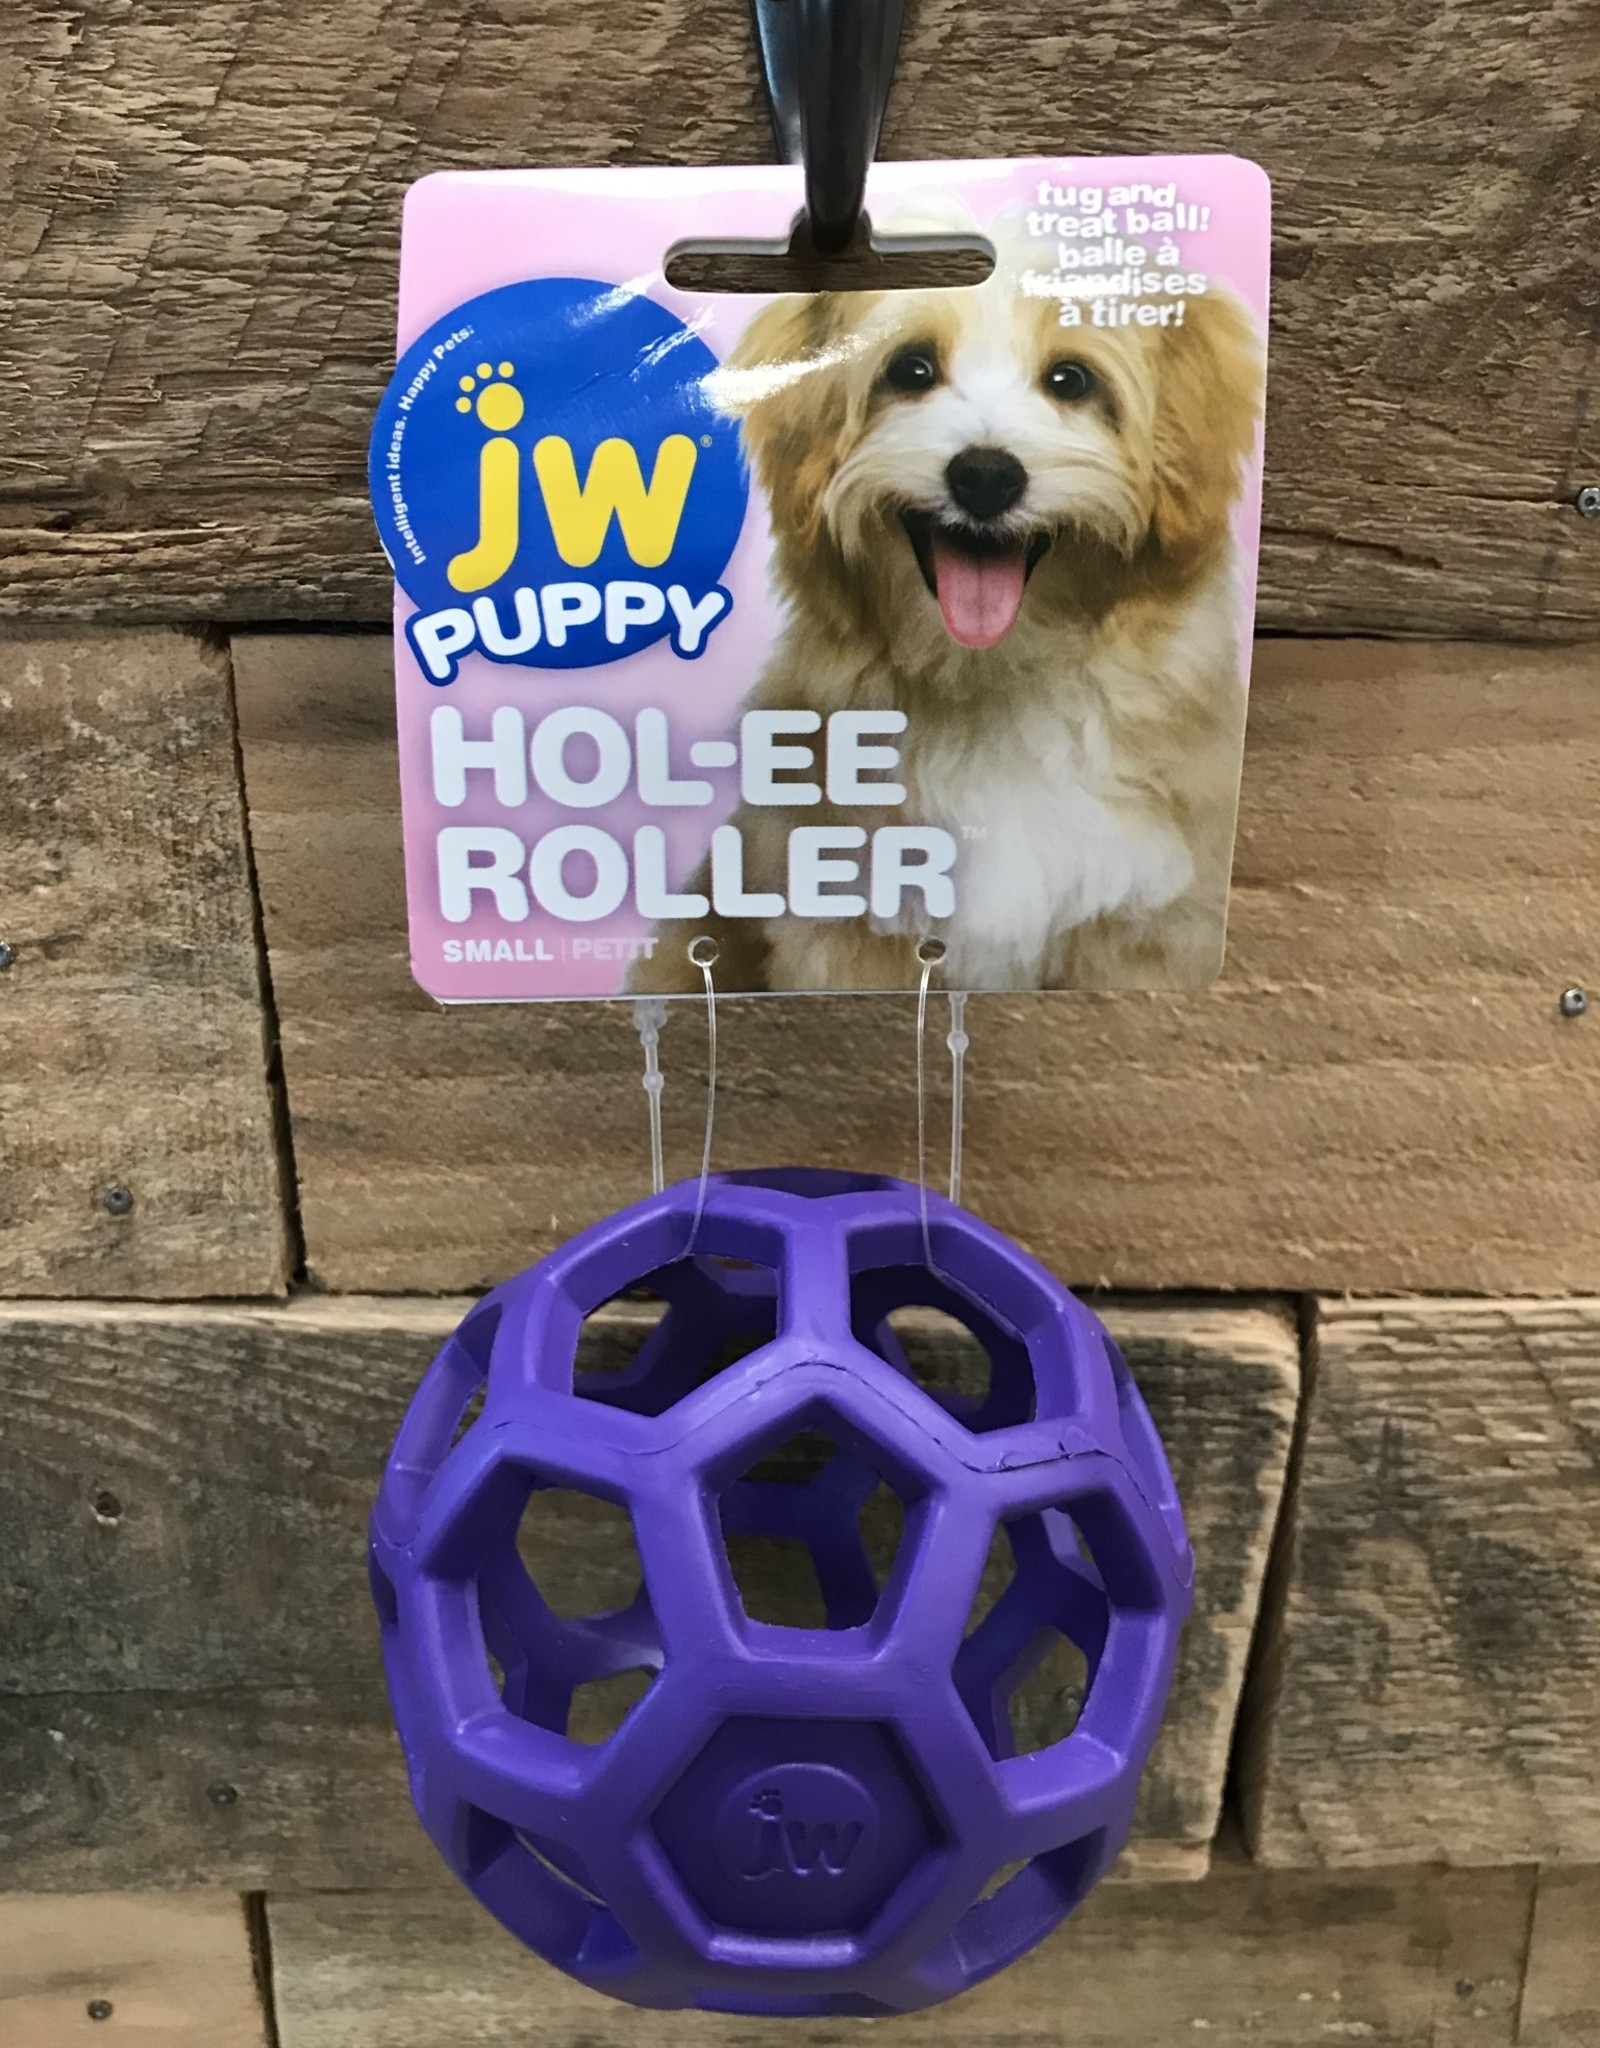 JW JW Puppy Hol-ee Roller Small Assorted